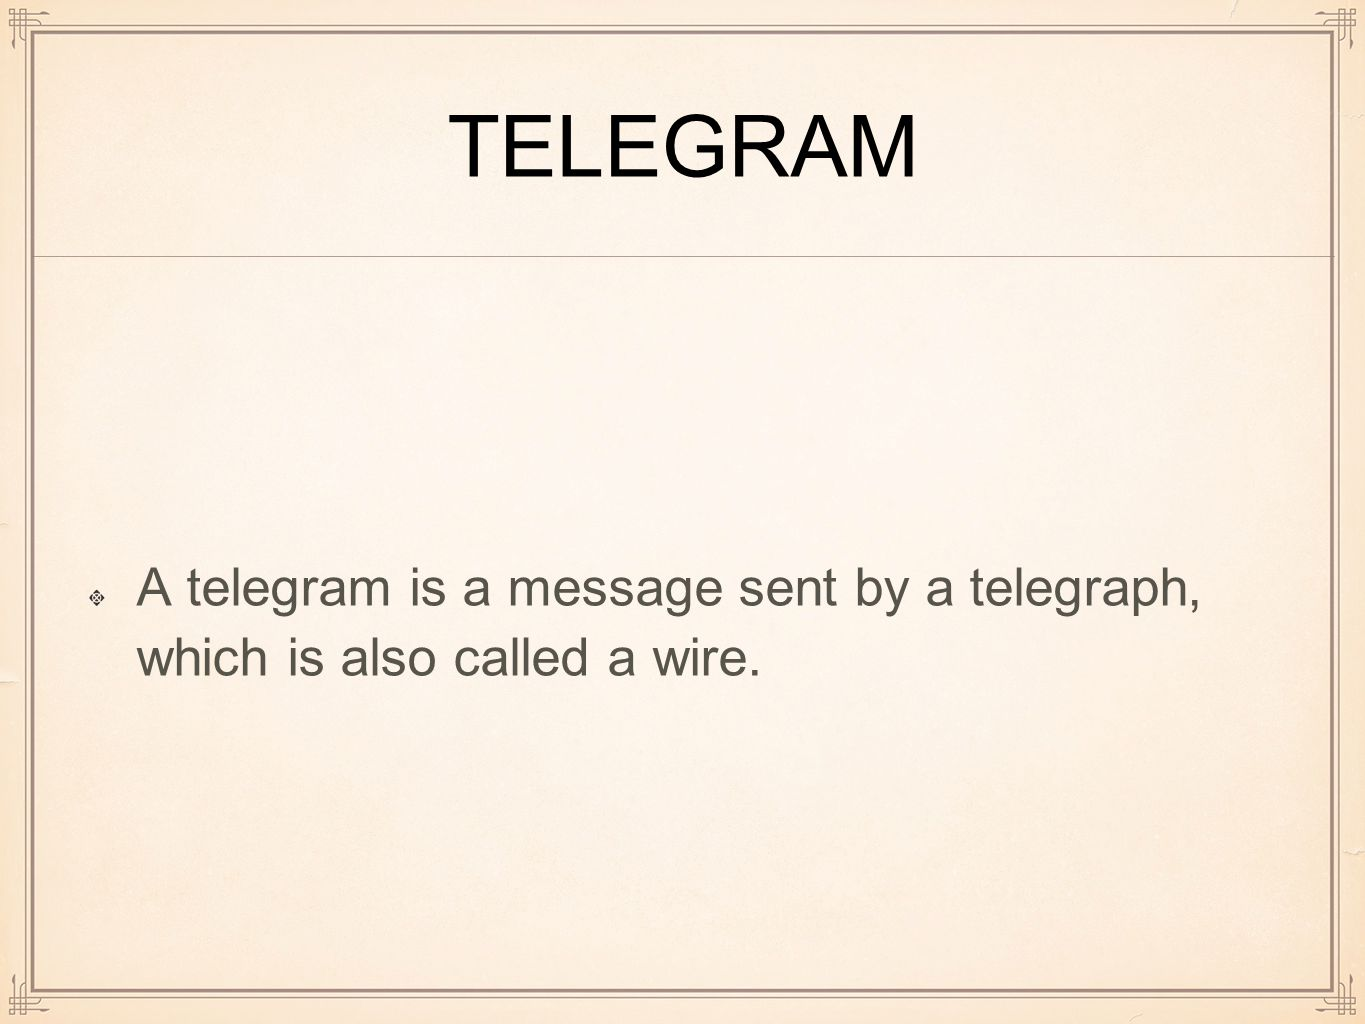 TELEGRAM A telegram is a message sent by a telegraph, which is also called a wire.